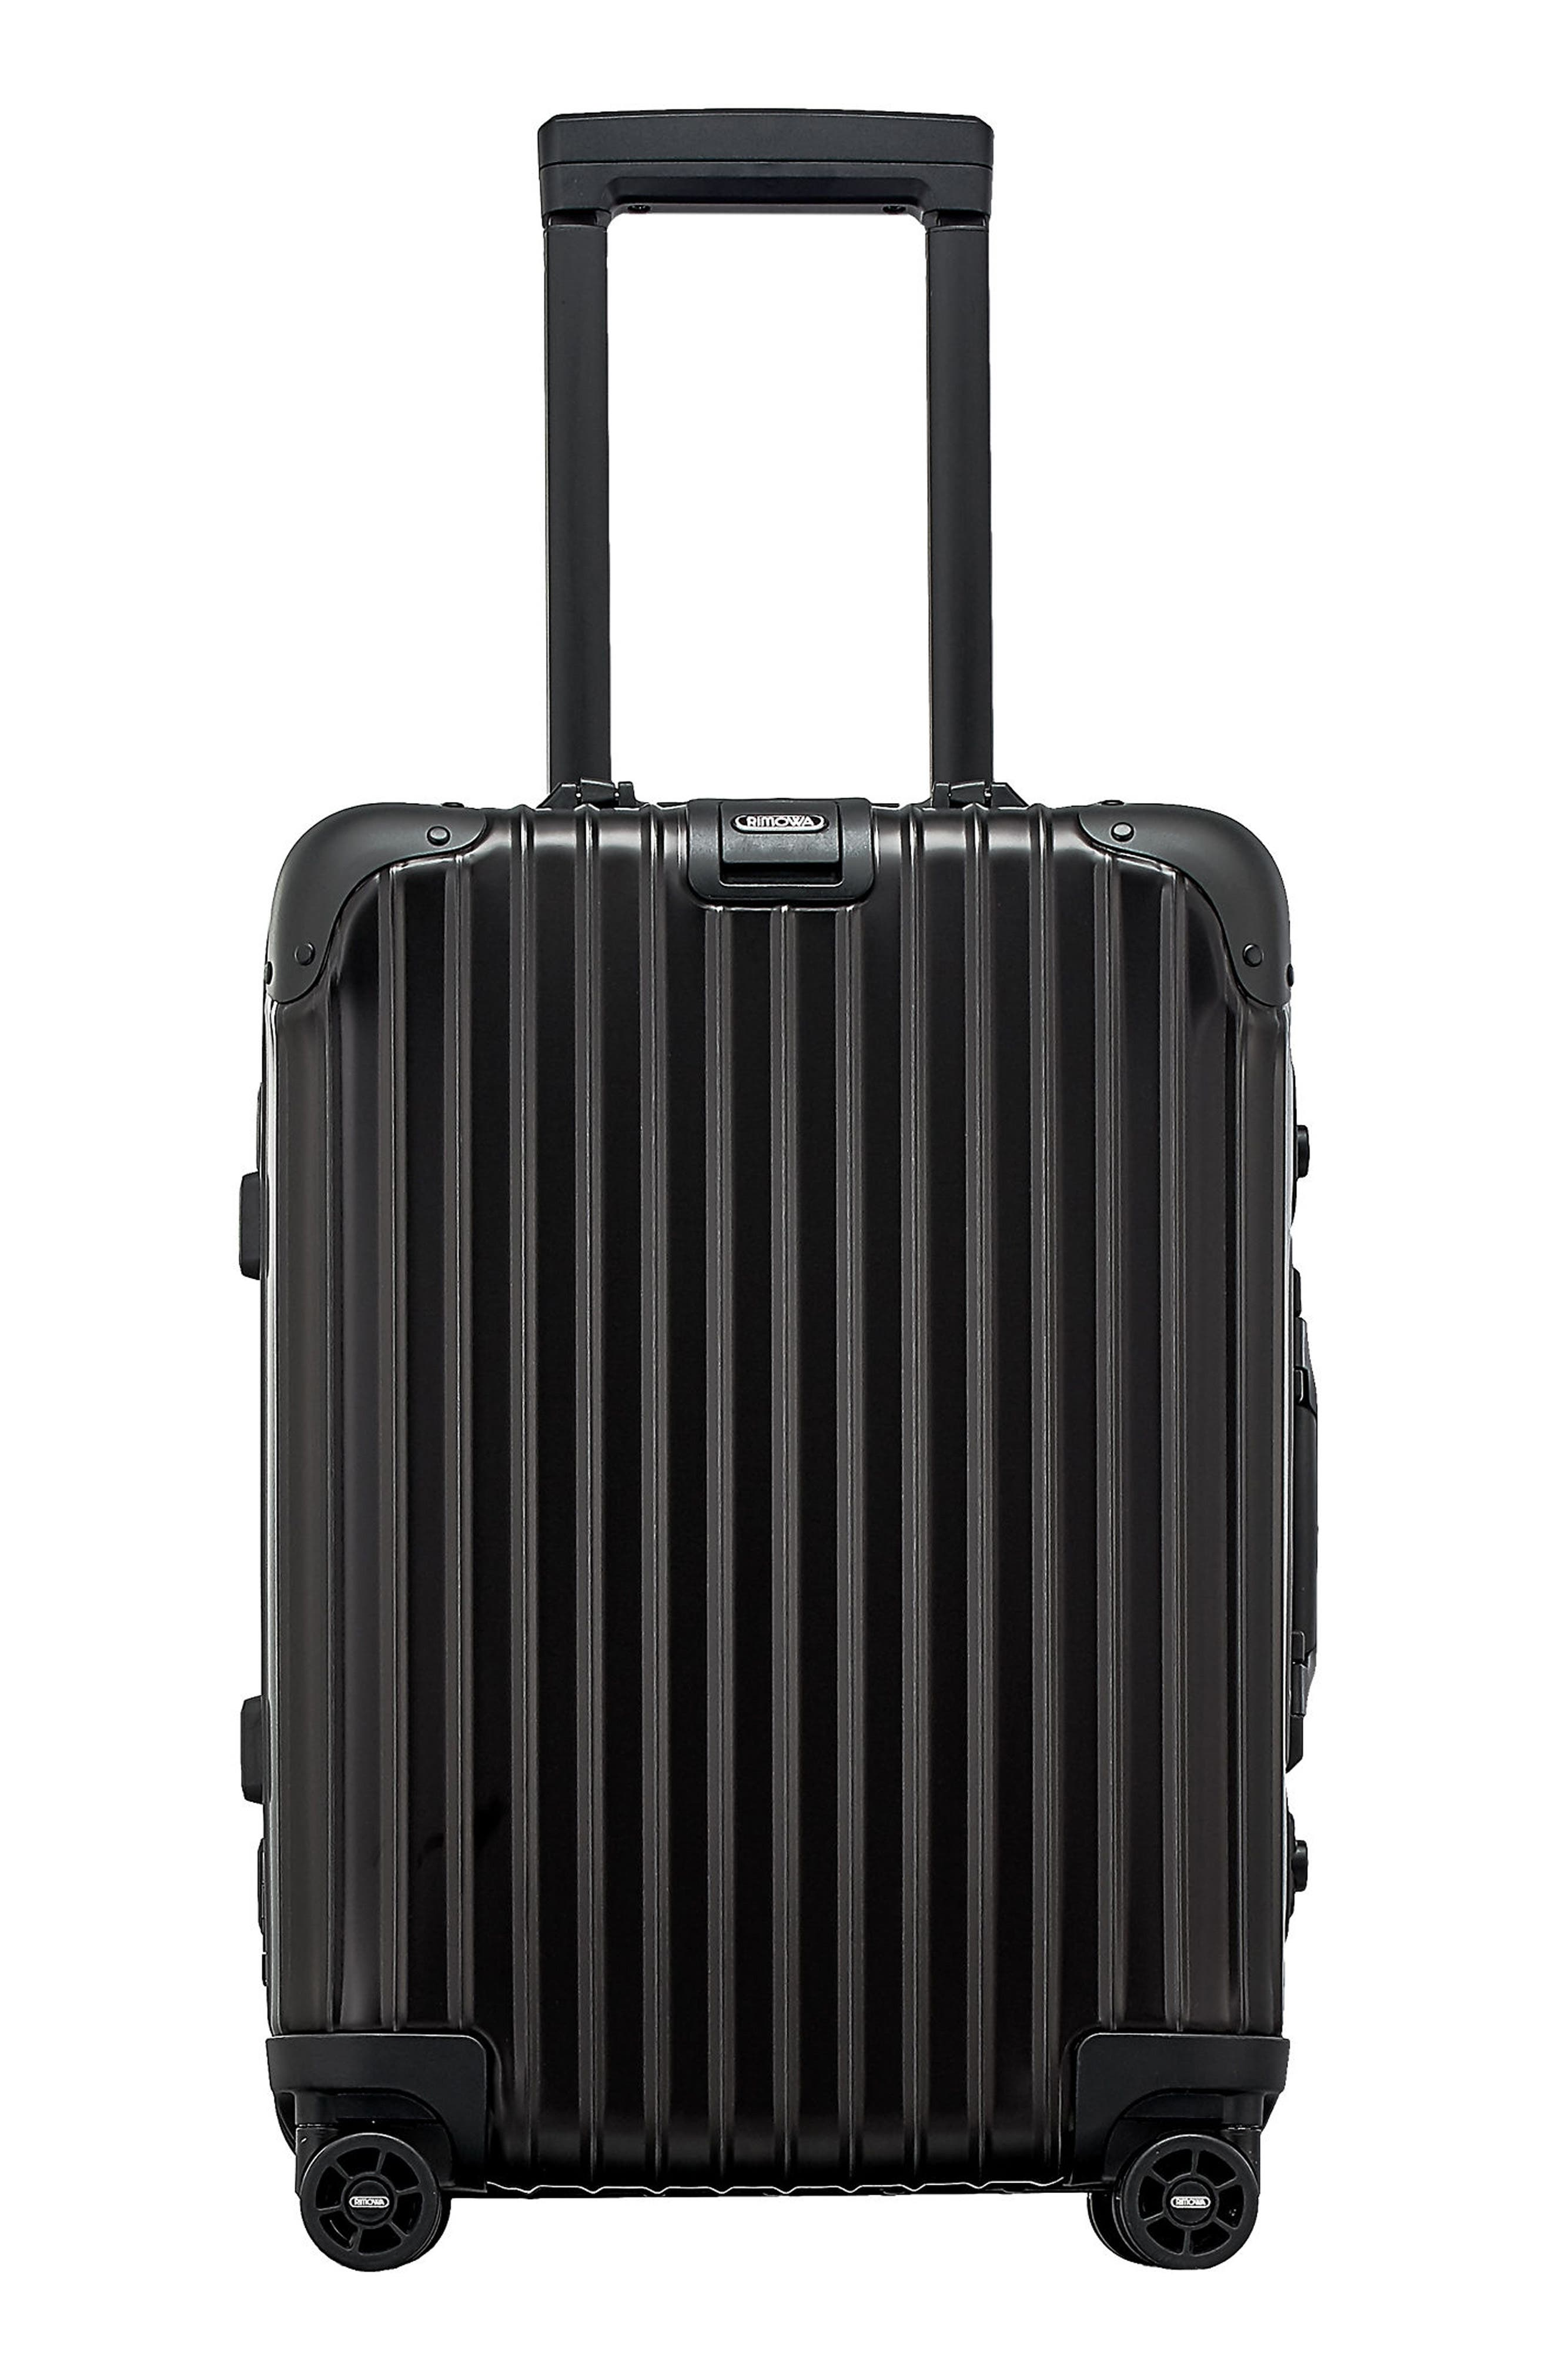 RIMOWA Topas Stealth 22-Inch Cabin Multiwheel® Aluminum Carry-On